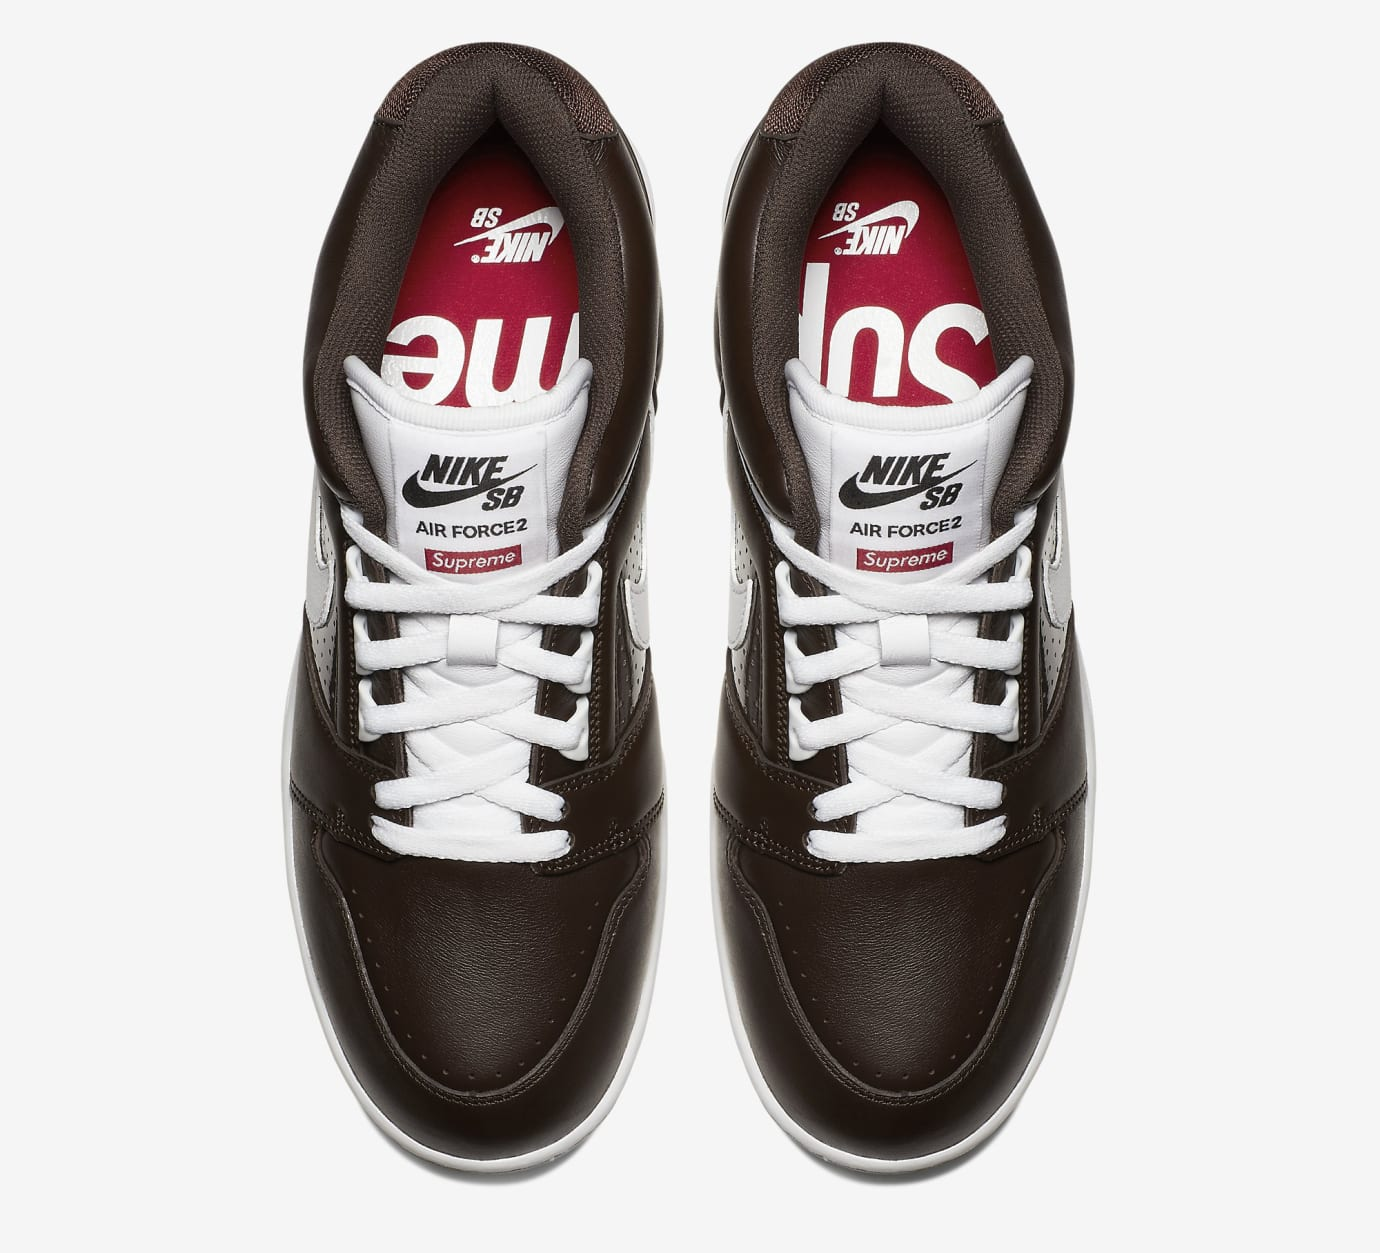 f9e8f4152b52 Image via Nike Supreme Nike SB Air Force 2 AA0871-212 Black Top